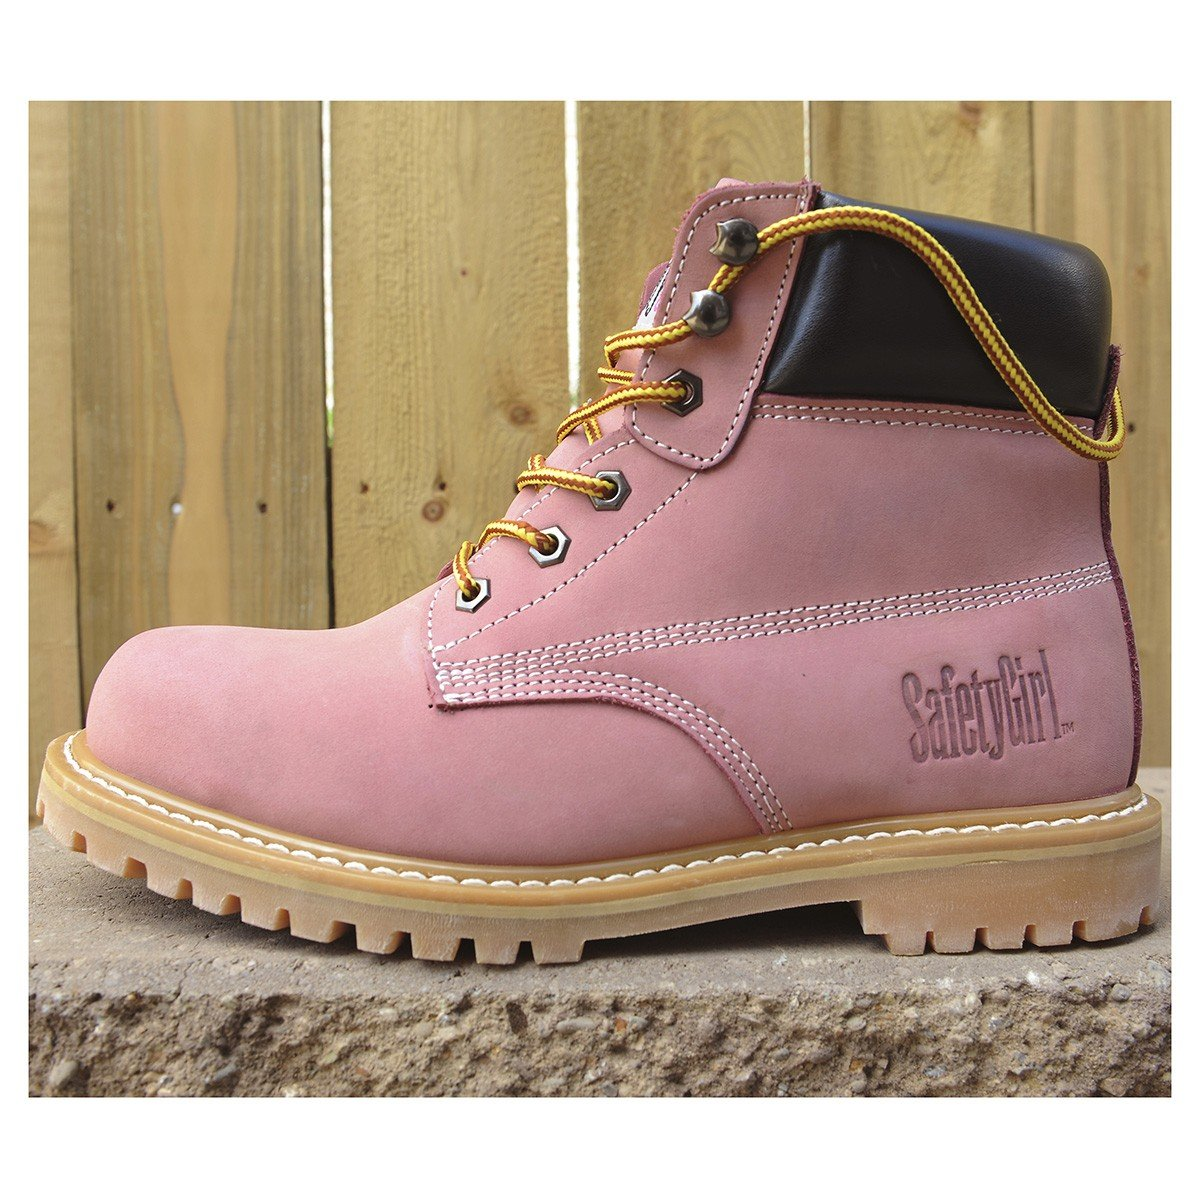 Safety Girl GS003-Lt Pink-9M Steel Toe Work Boots - Light Pink - 9M, English, Capacity, Volume, Leather, 9M, Pink () by Safety Girl (Image #7)